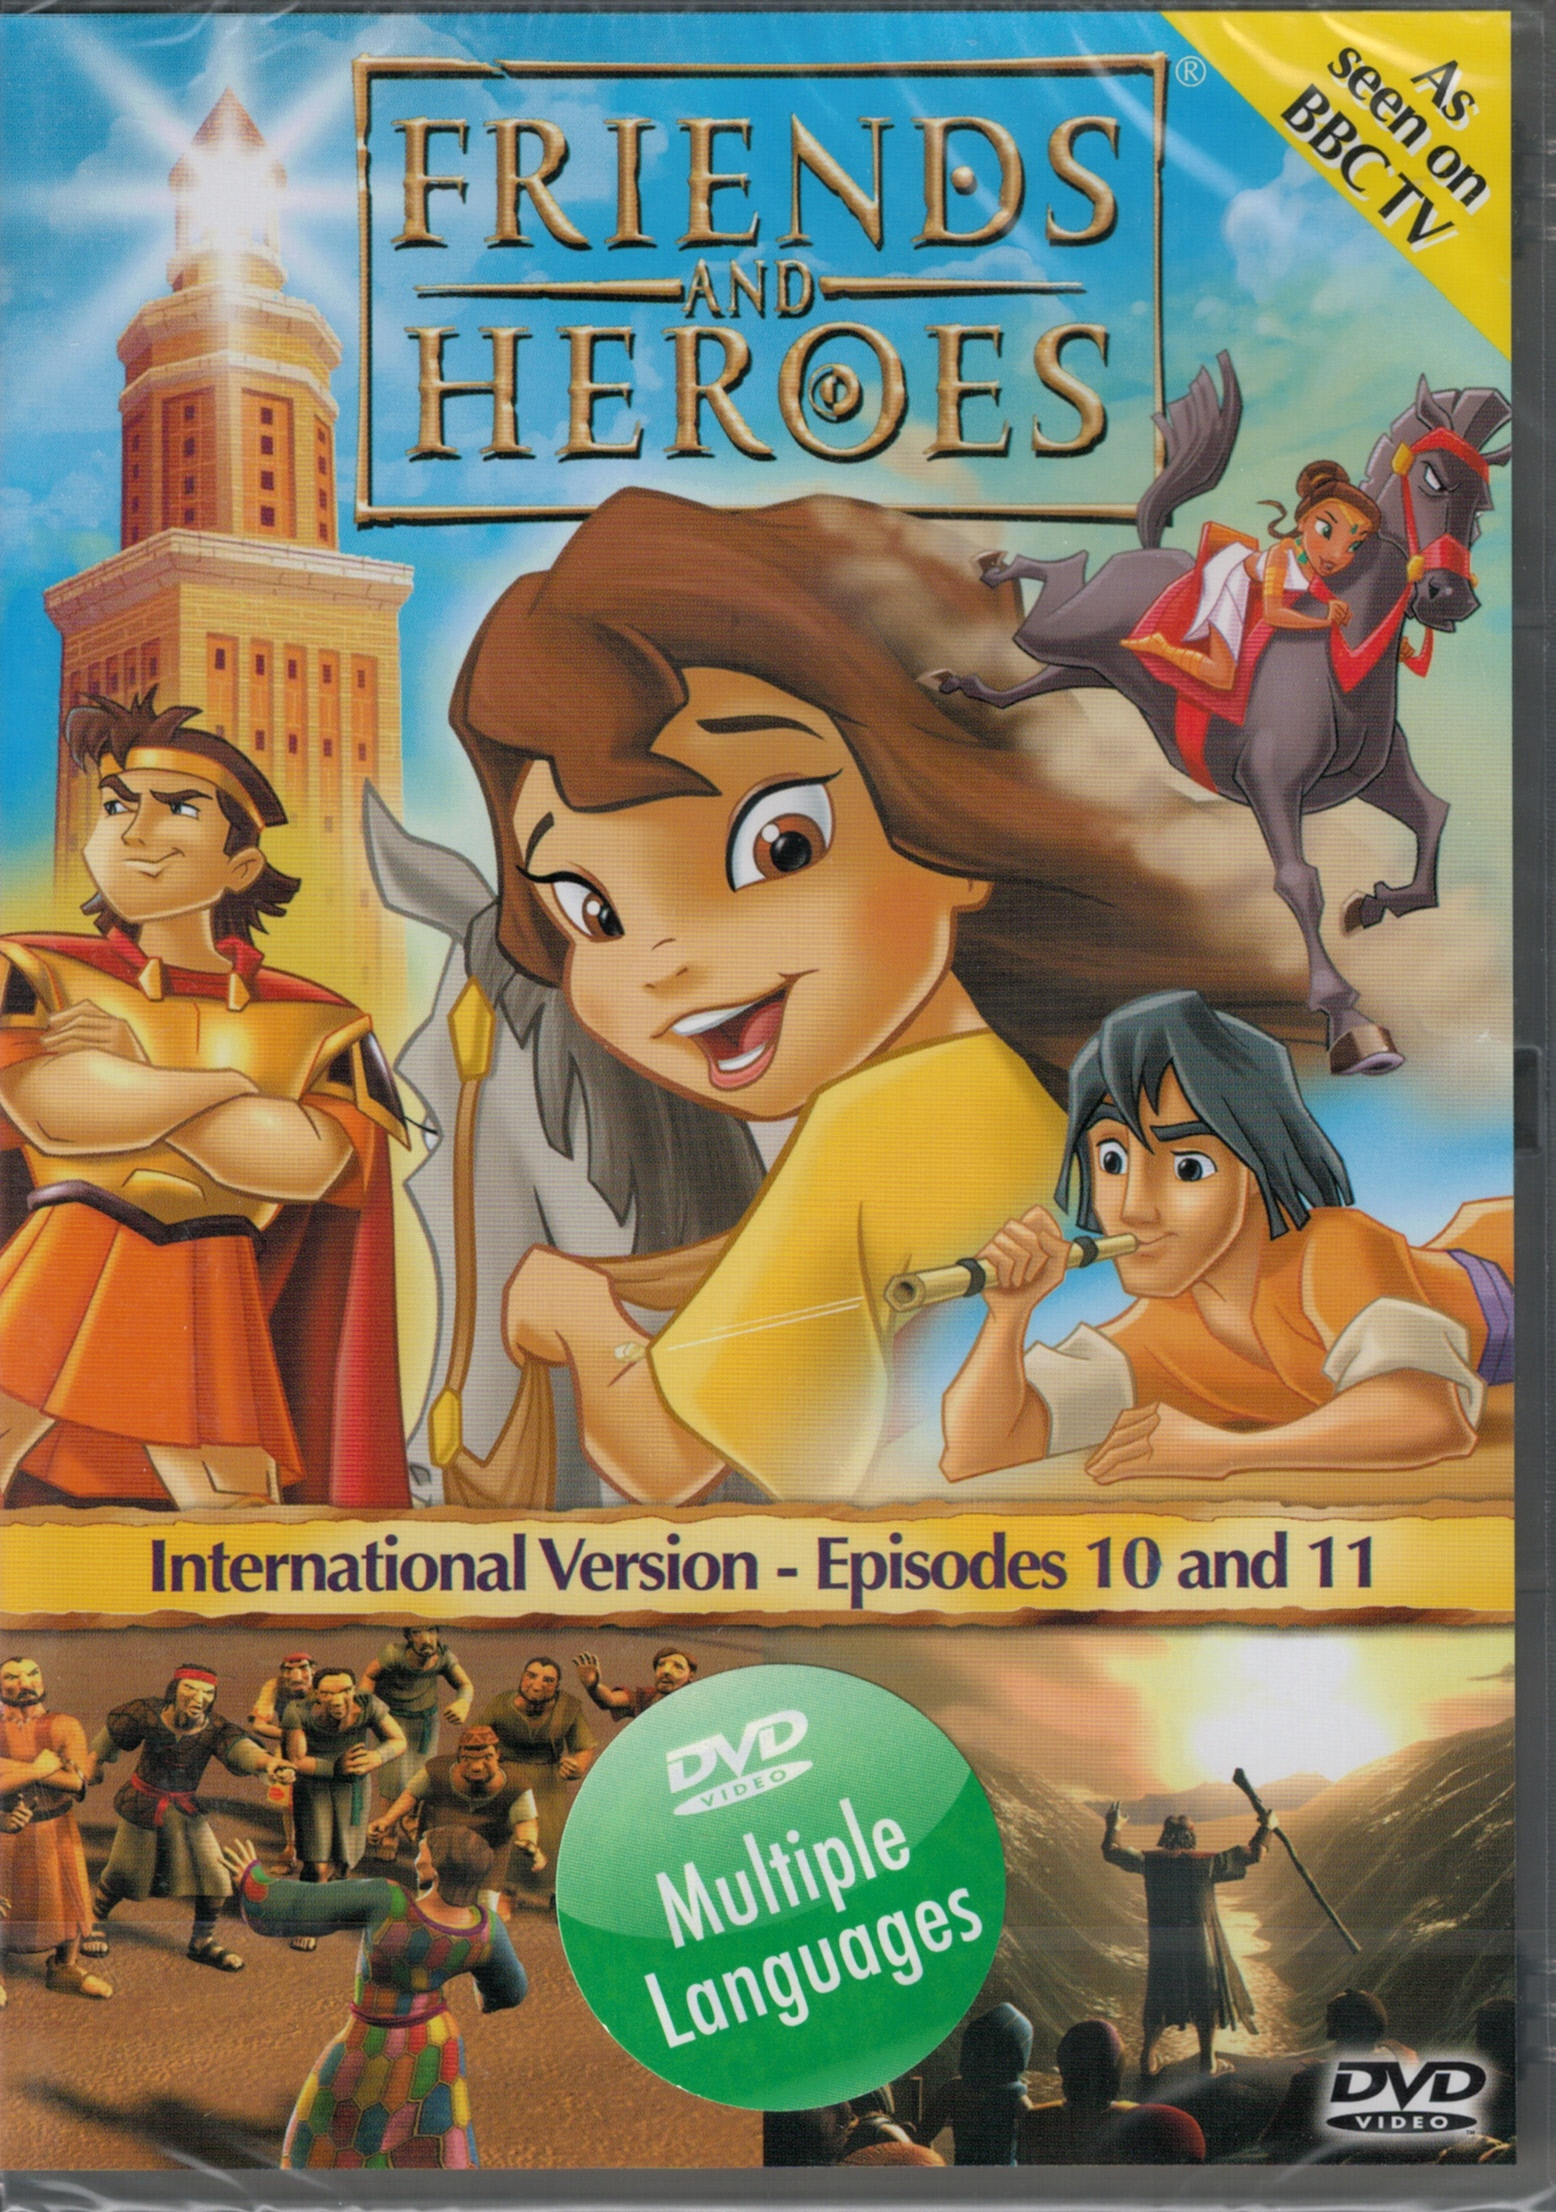 DVD Friends and Heroes Episodes 10-11